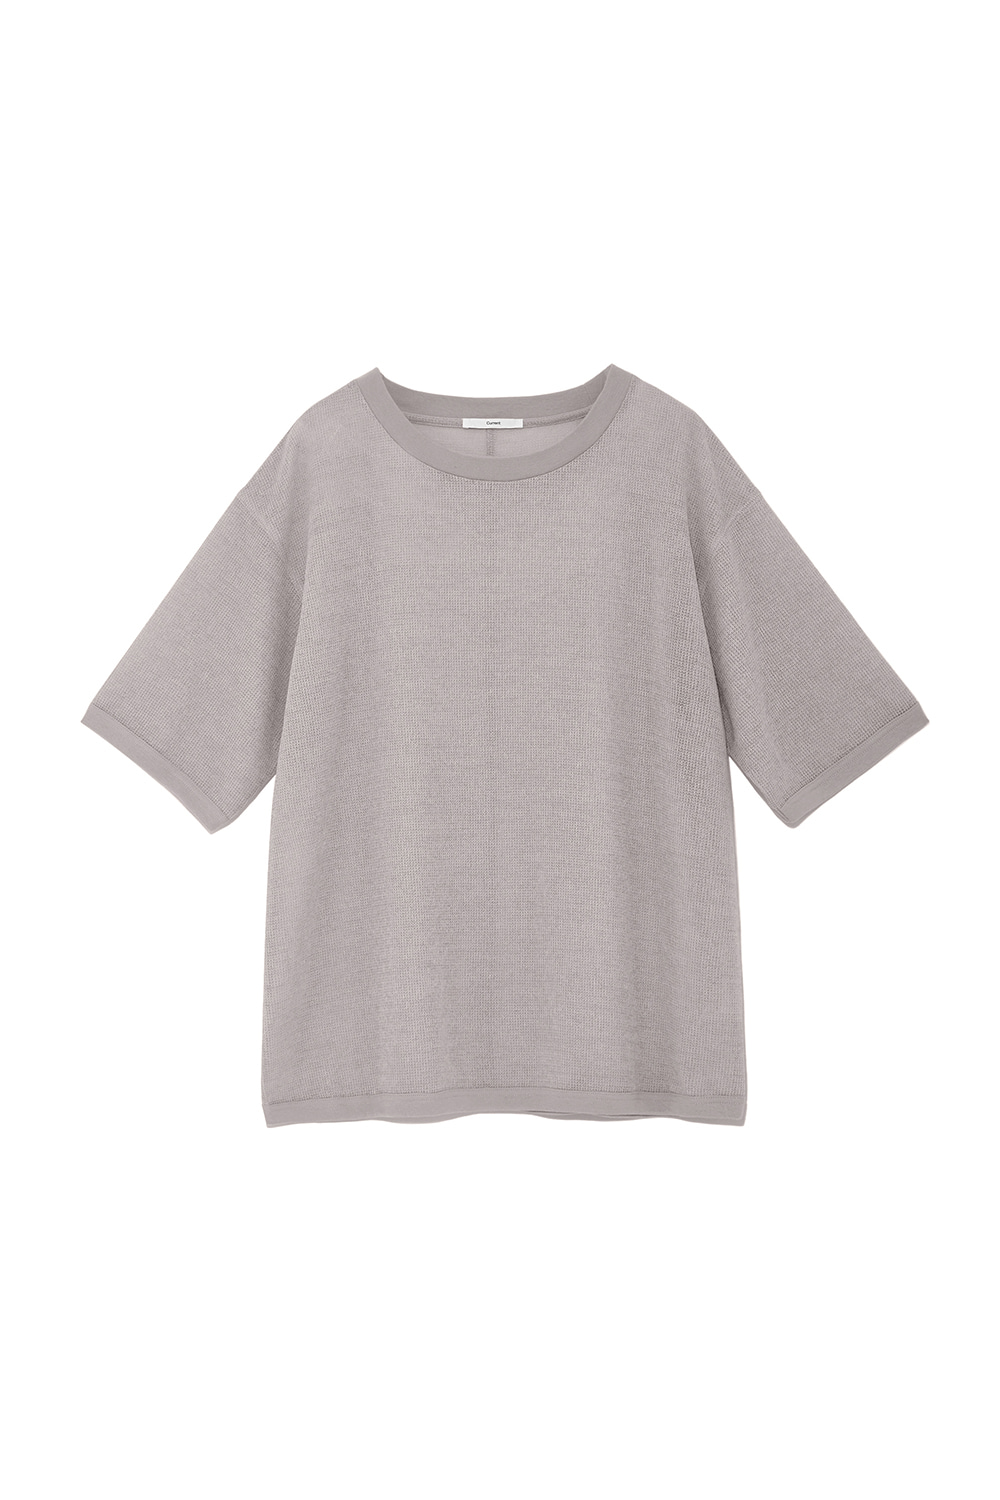 Oversized Mesh Tee Men [Light Gray]